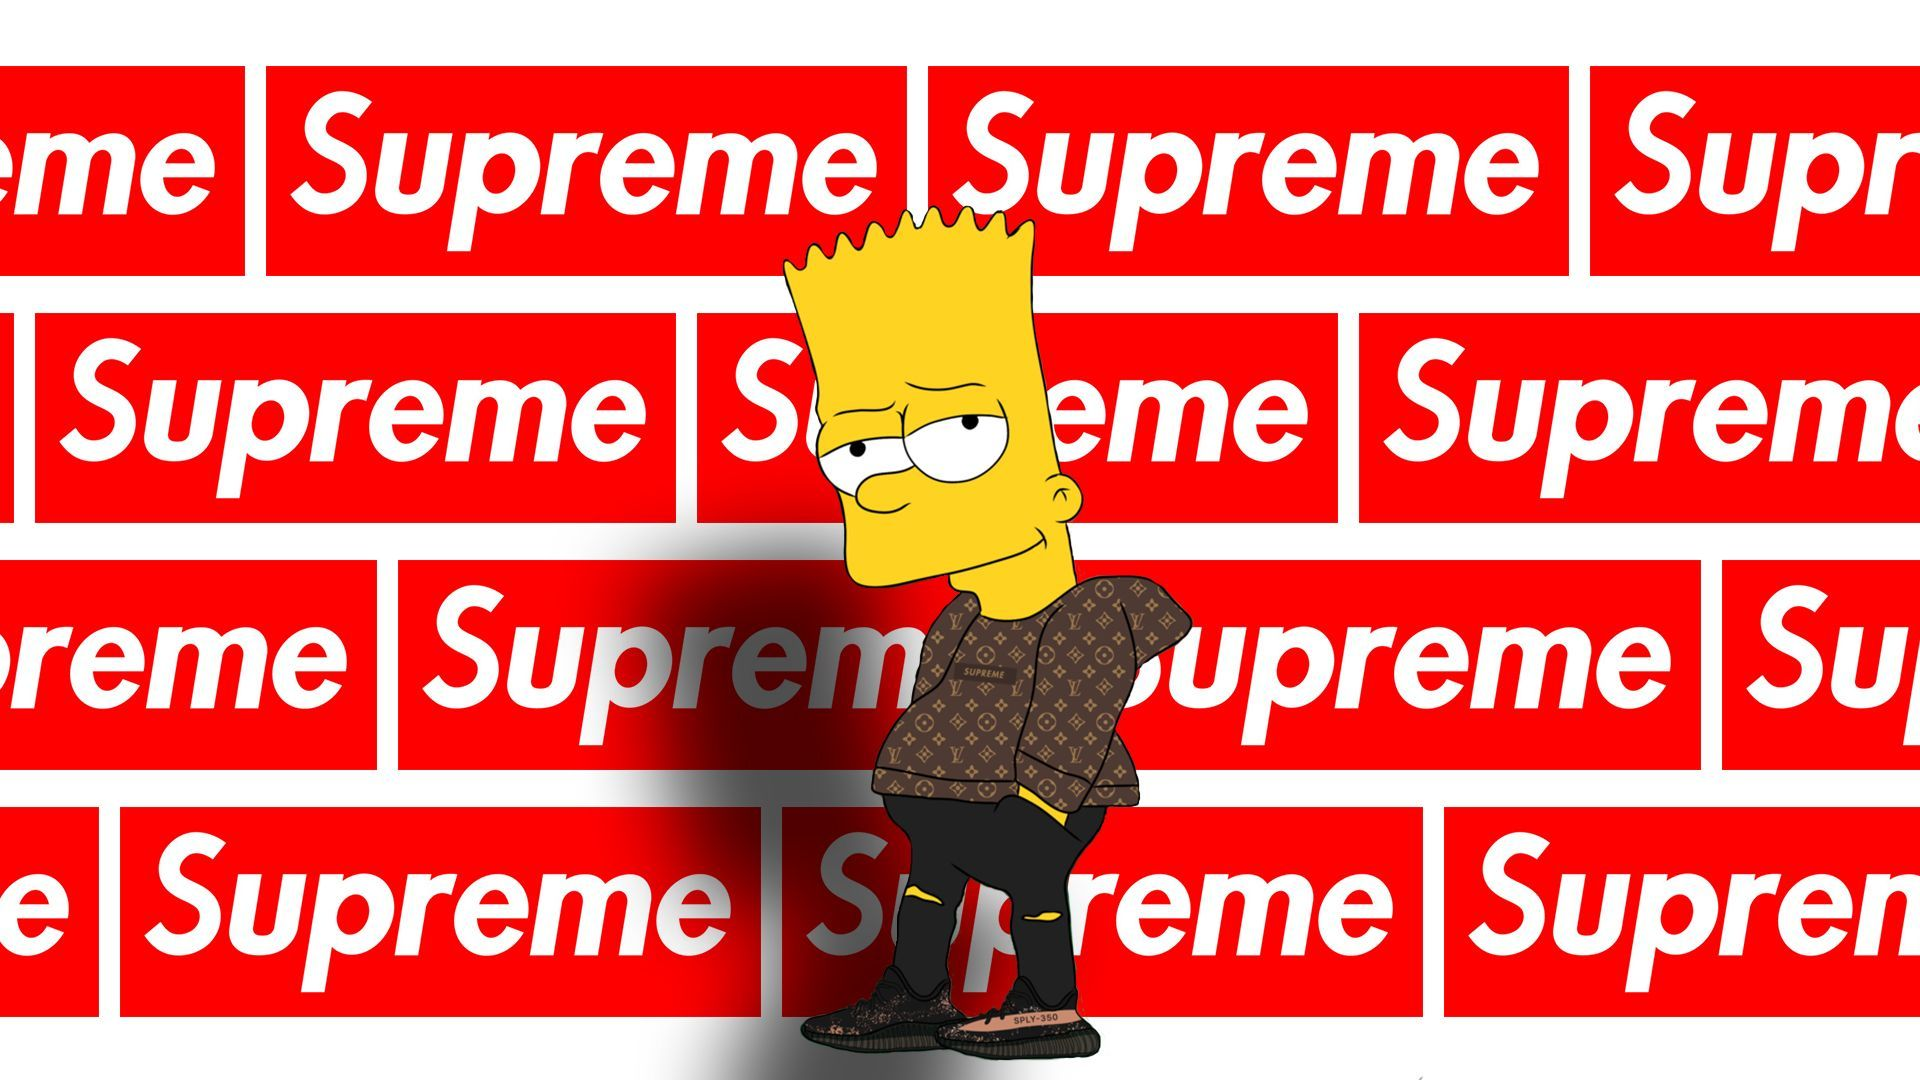 High Bart Simpson Supreme Wallpapers Top Free High Bart Simpson Supreme Backgrounds Wallpaper Supreme Wallpaper Supreme Iphone Wallpaper Supreme Background